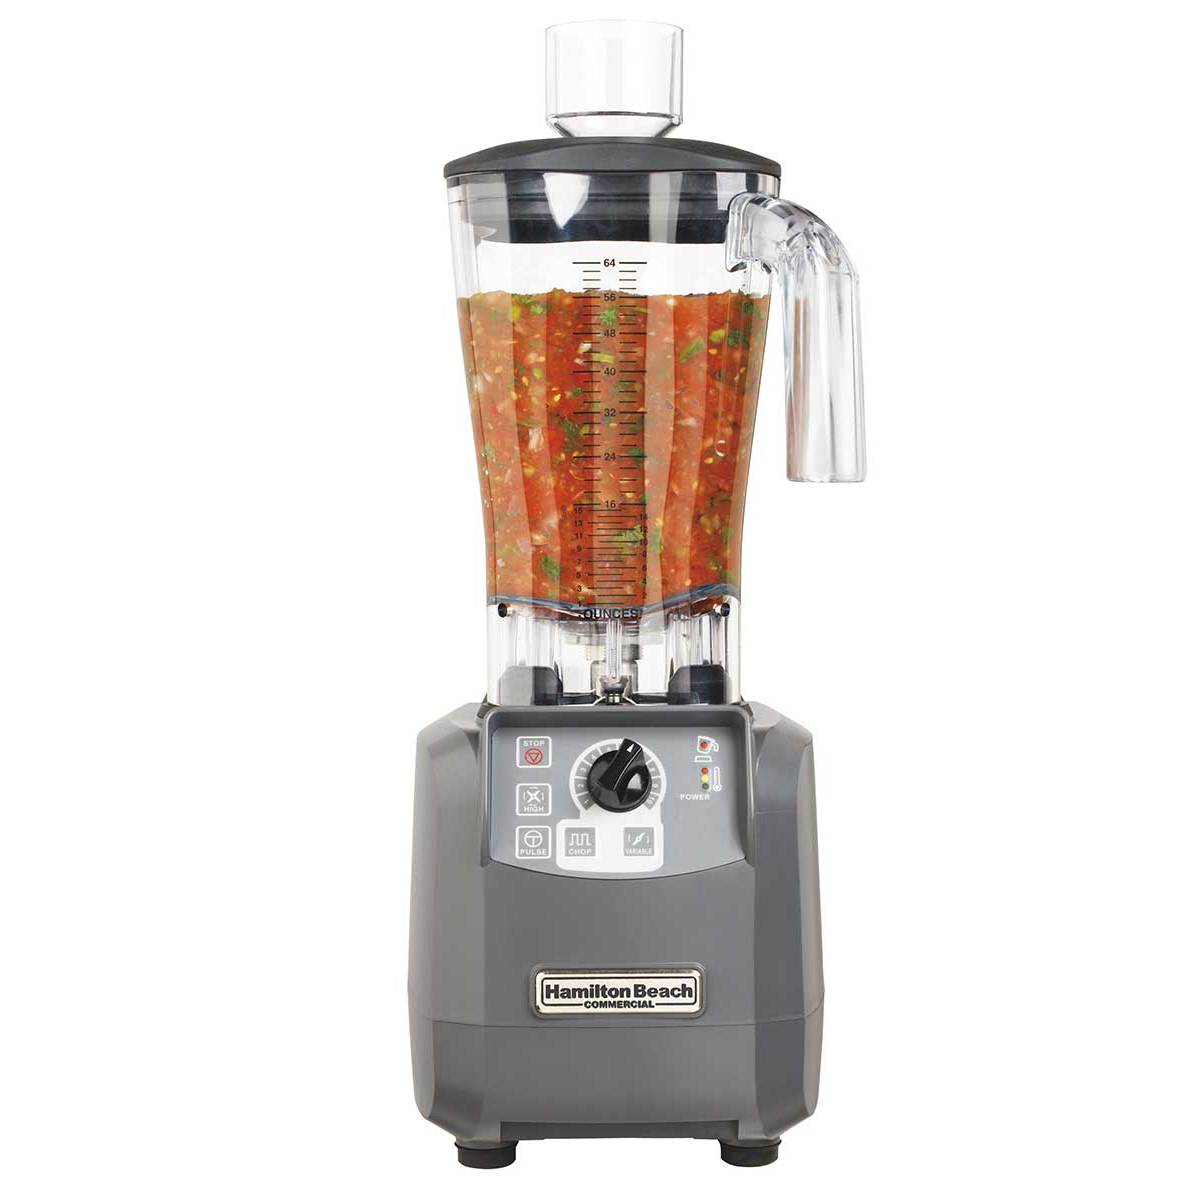 EXPEDITOR™ 600 Variable Speed Commercial Culinary Blender with Chop Function (HBF600)